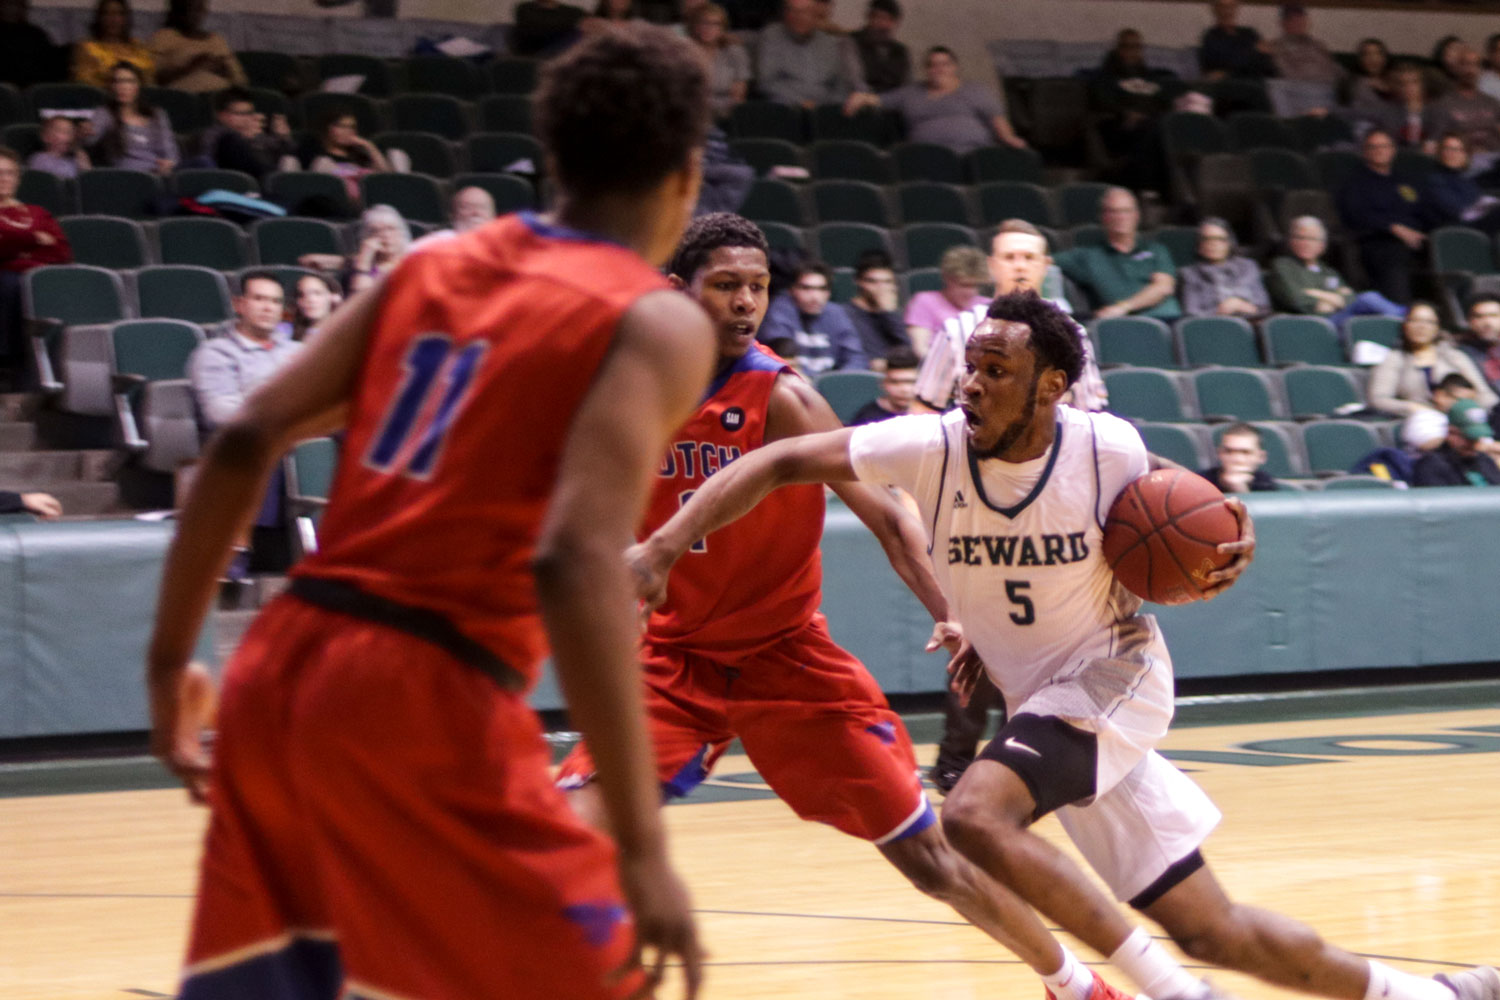 The Seward County Community College mens basketball team are ranked No. 13 in the nation. The Saints improved to 18-3 in conference play and 25-5 overall. The 25 wins are the team's most since the 2012-13 season when Seward went 25-8.